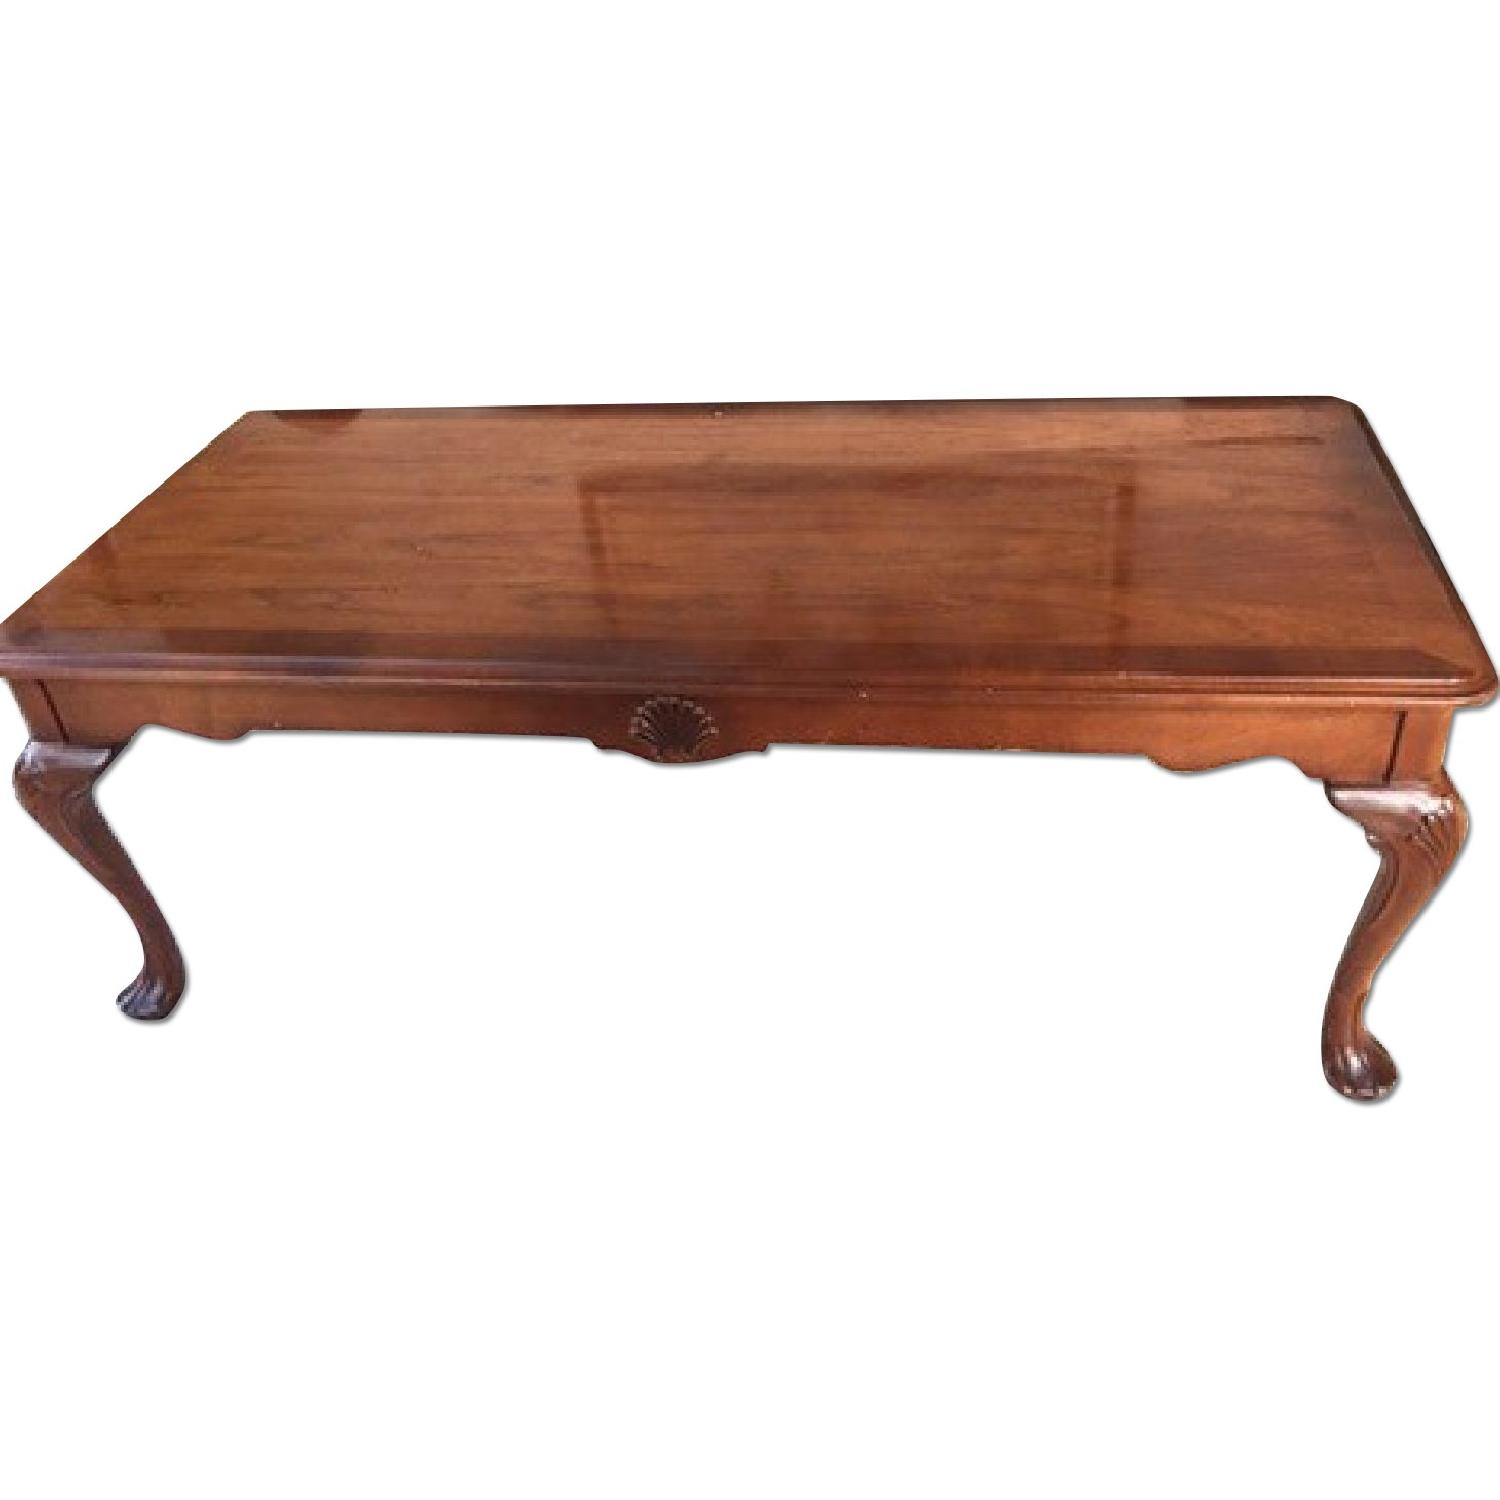 Cherry wood coffee table aptdeco Coffee table cherry